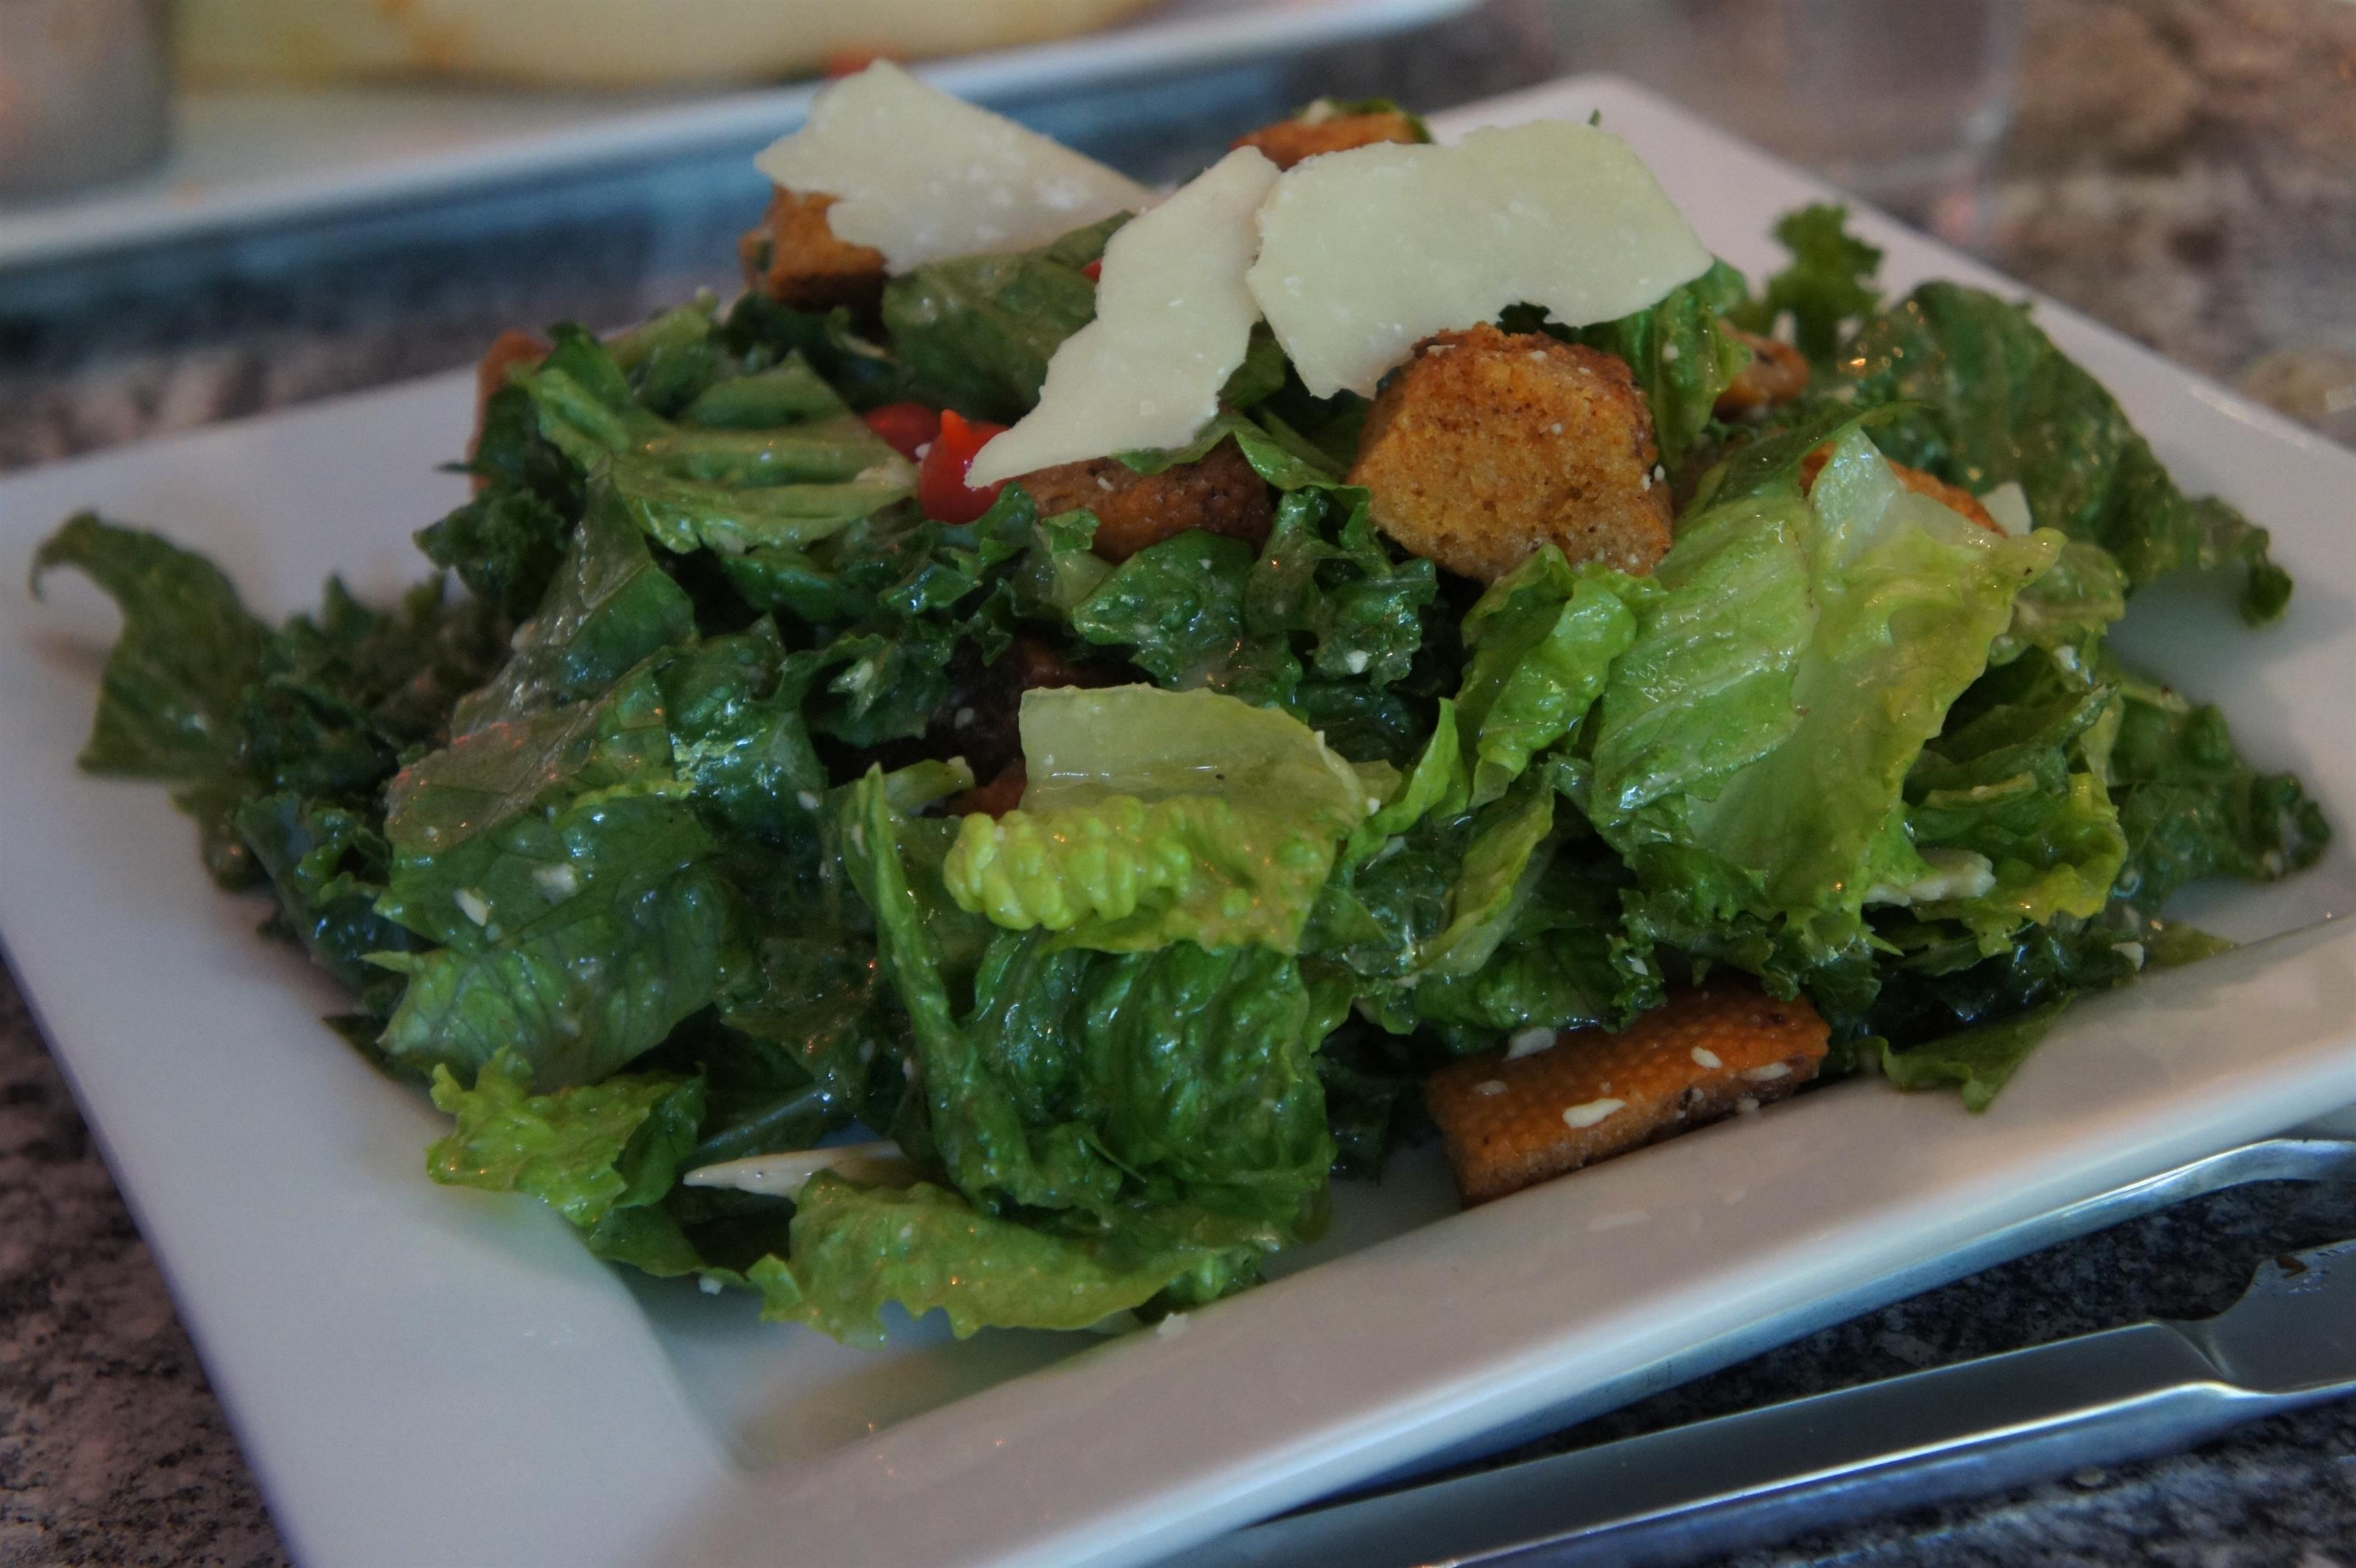 Mixed greens salad with croutons and shaved cheese tossed in dressing